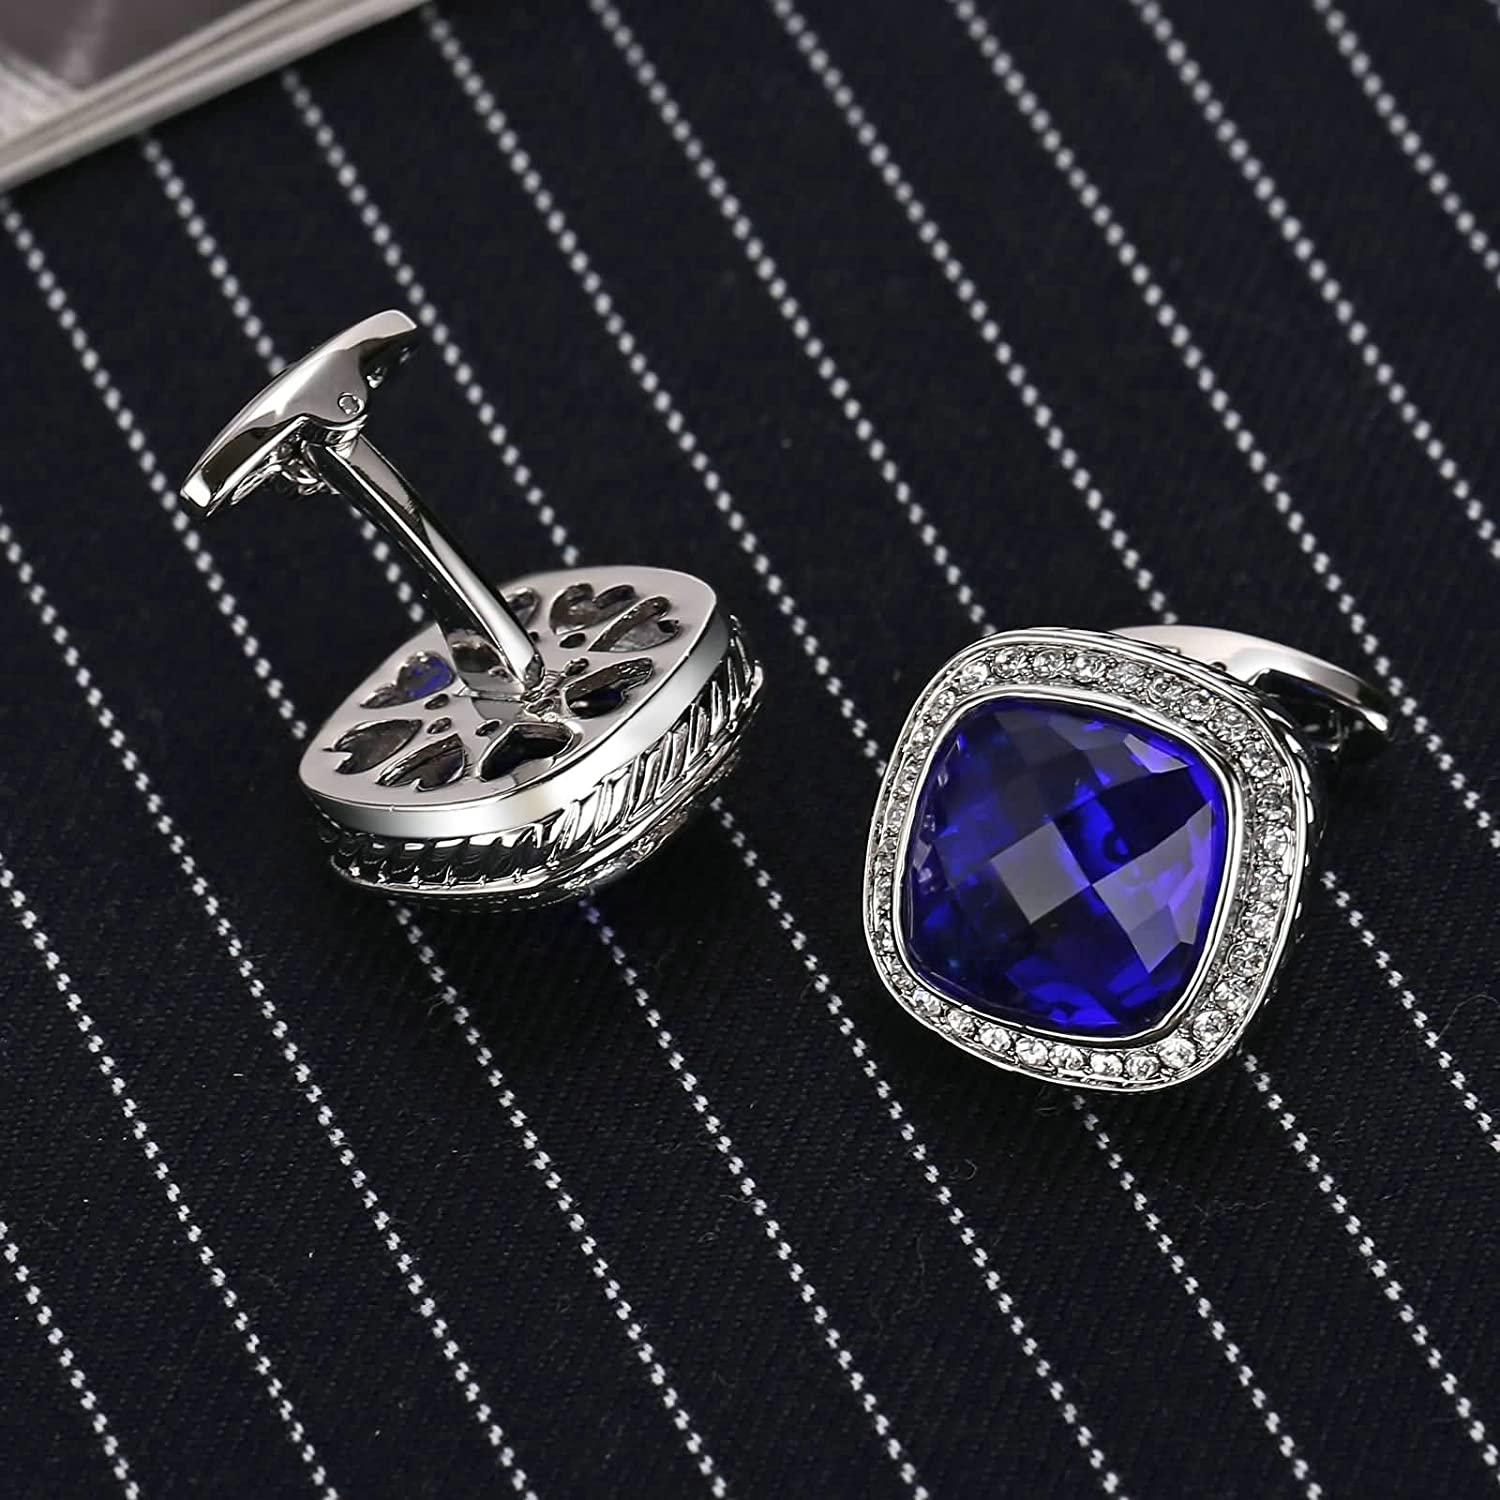 Mens Cufflinks Stainless Steel Rounded Cz Square Zirconia Silver Blue 2.1X2.1CM Xmas Gift Box Aooaz